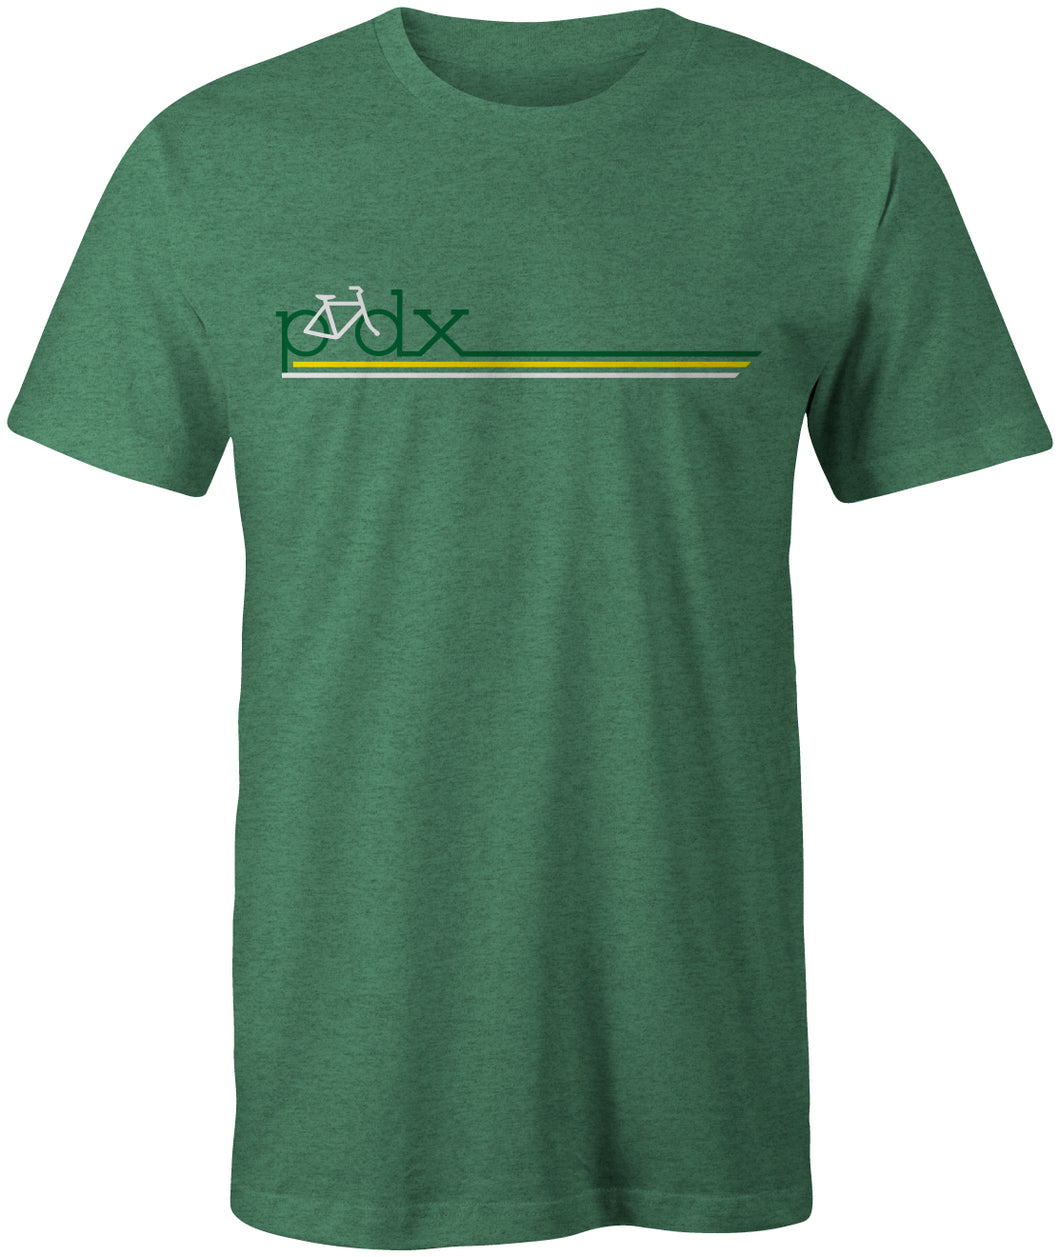 Wholesale PDX bike T-shirt